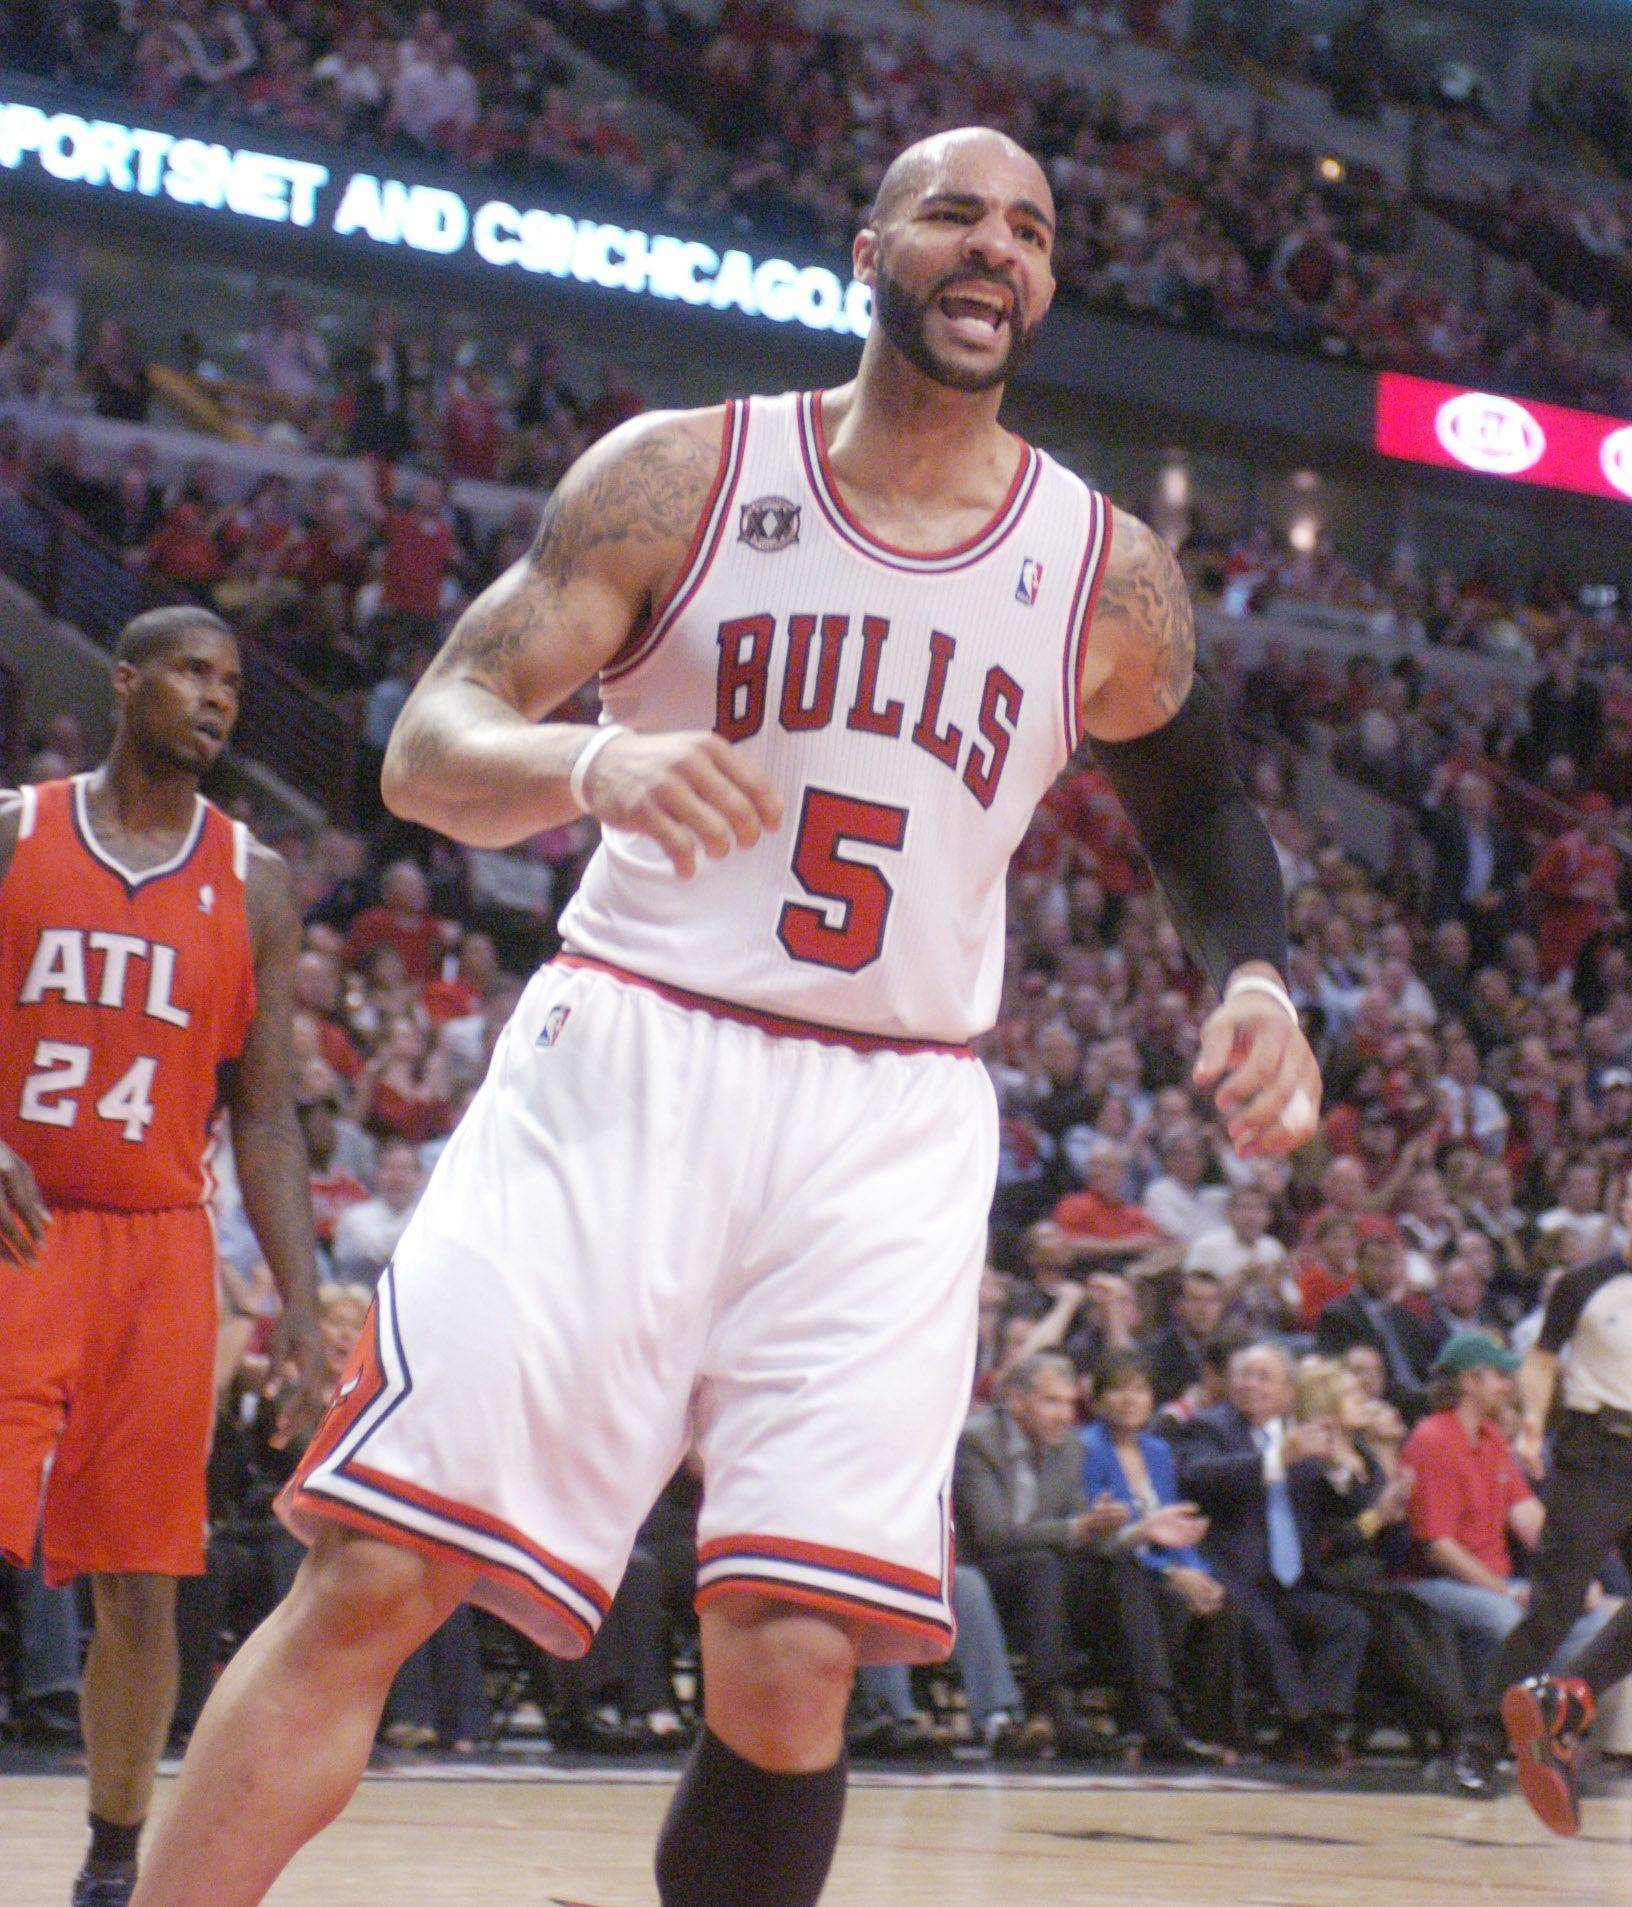 Chicago's Carlos Boozer celebrates after scoring in the closing seconds of the first half against the Atlanta Hawks Monday.